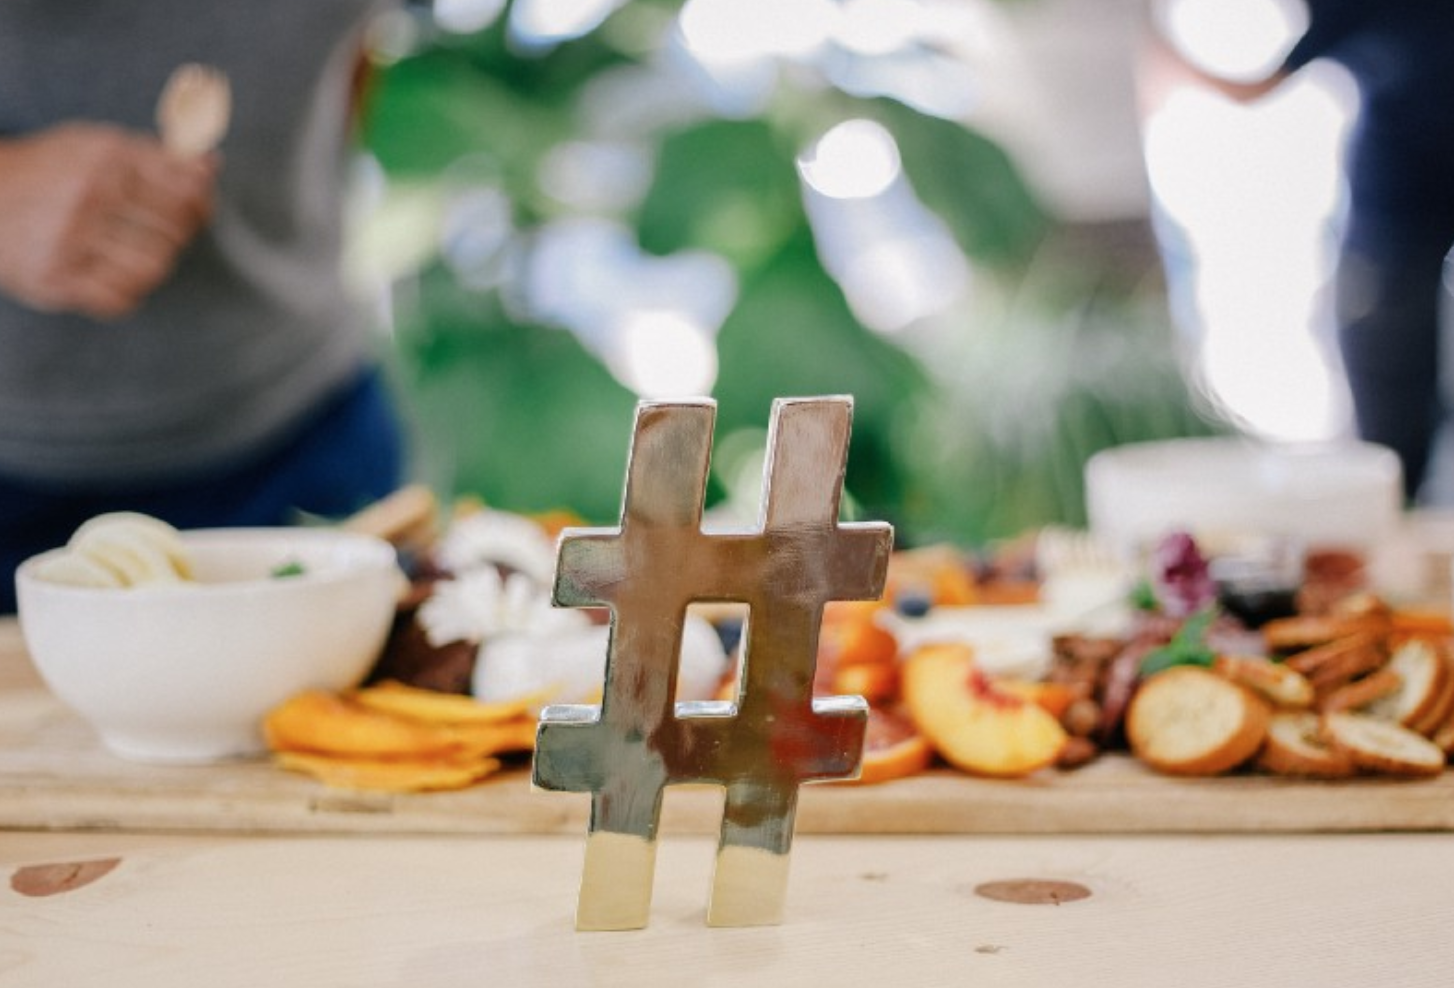 Hashtag is the New Black: Full Guide on Using Hashtags on Instagram in 2019